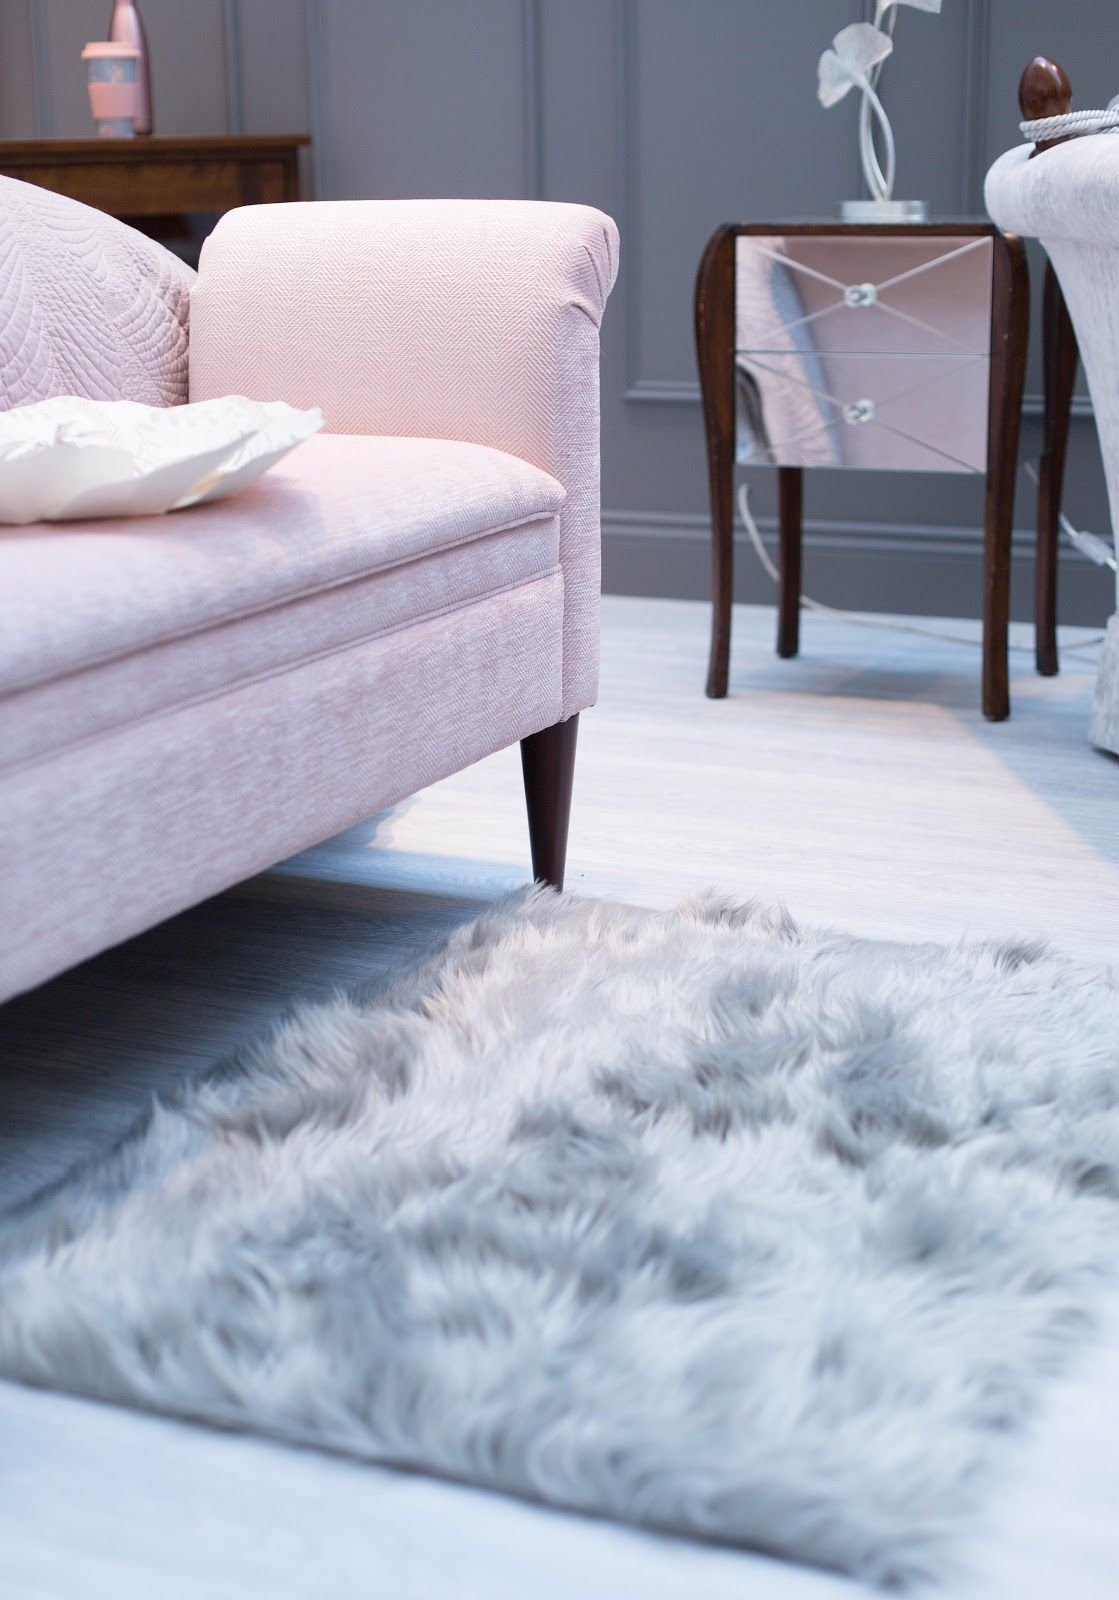 Fluffy Rugs For Bedroom Hot Pink Fluffy Rug Fluffy Rugs For Bedroom ...